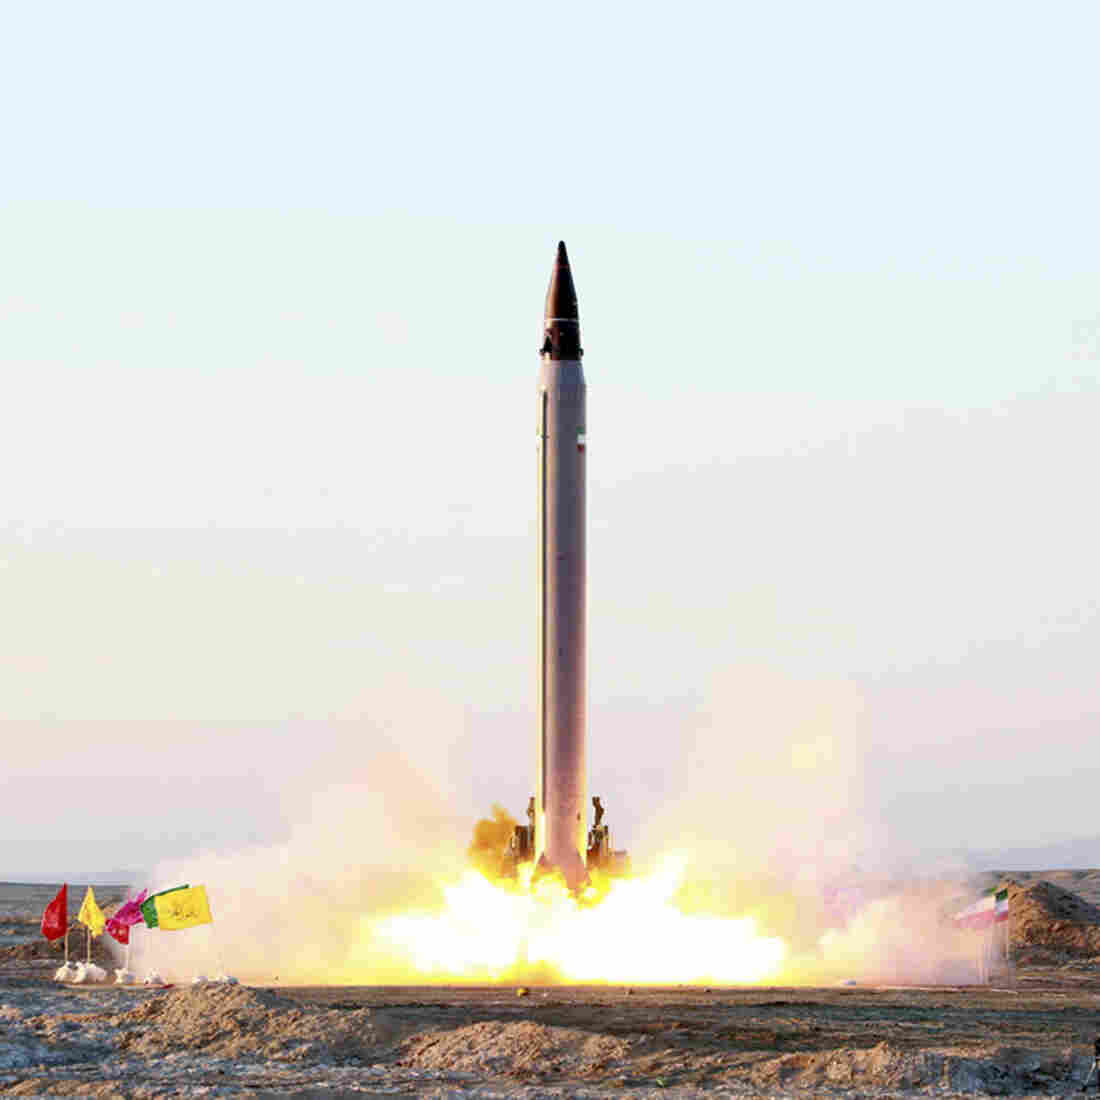 Iran Test-Fires A New, Precision-Guided Ballistic Missile